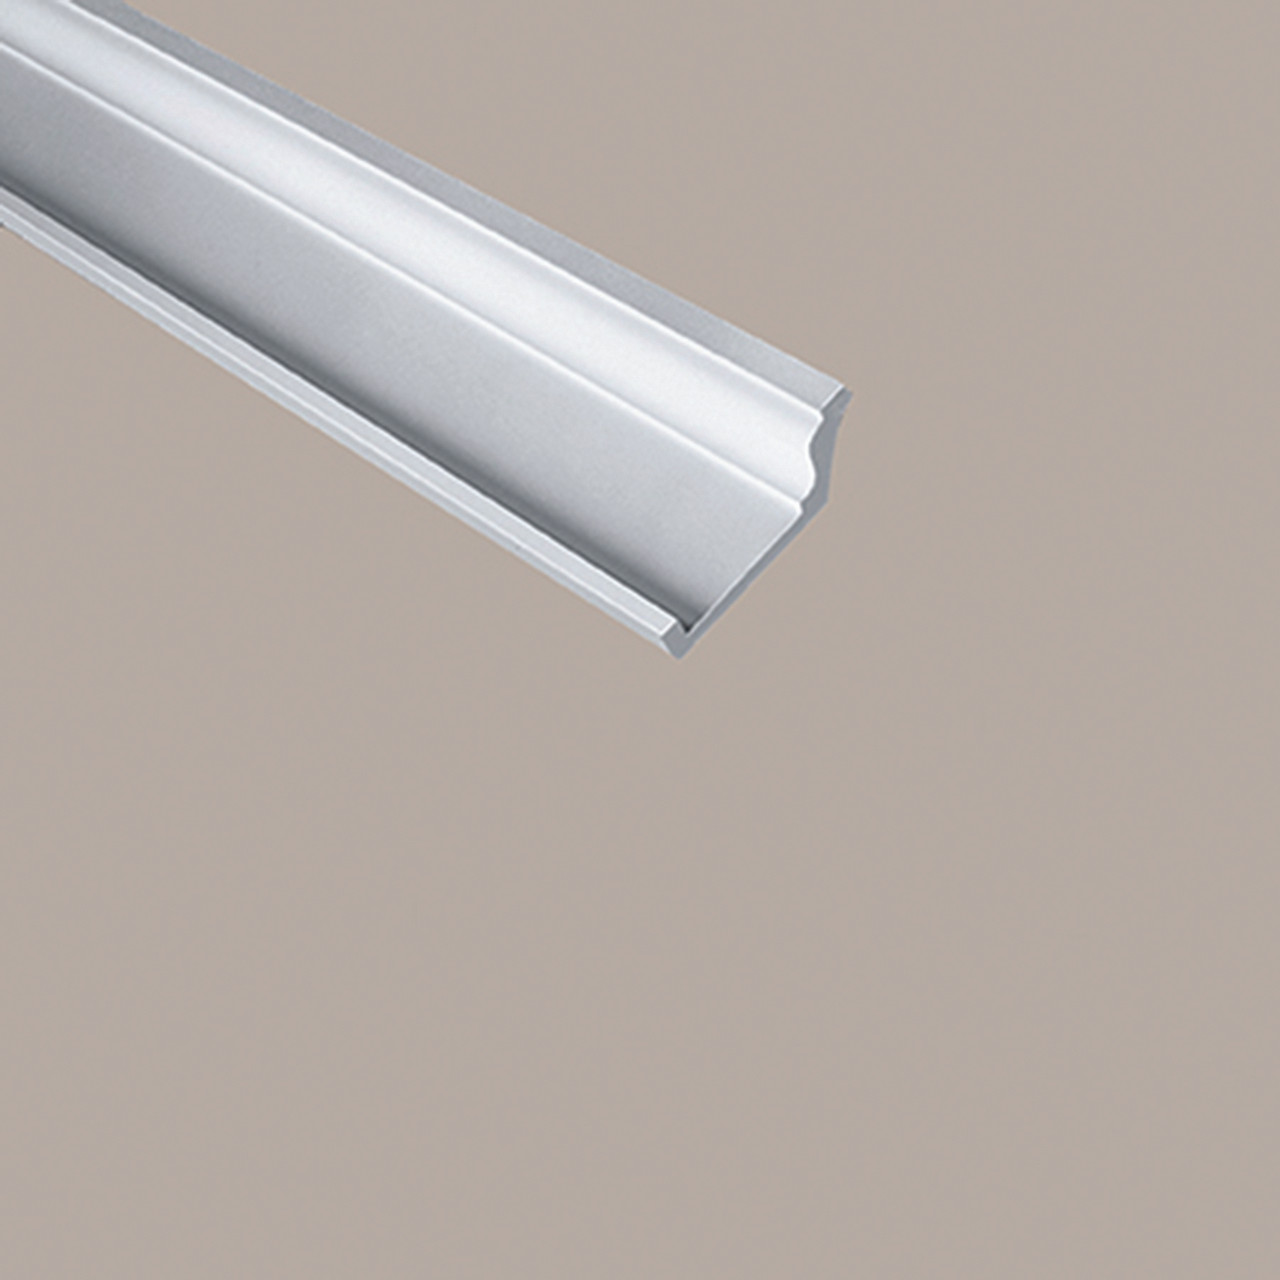 Mld539 16 for Fypon crown molding